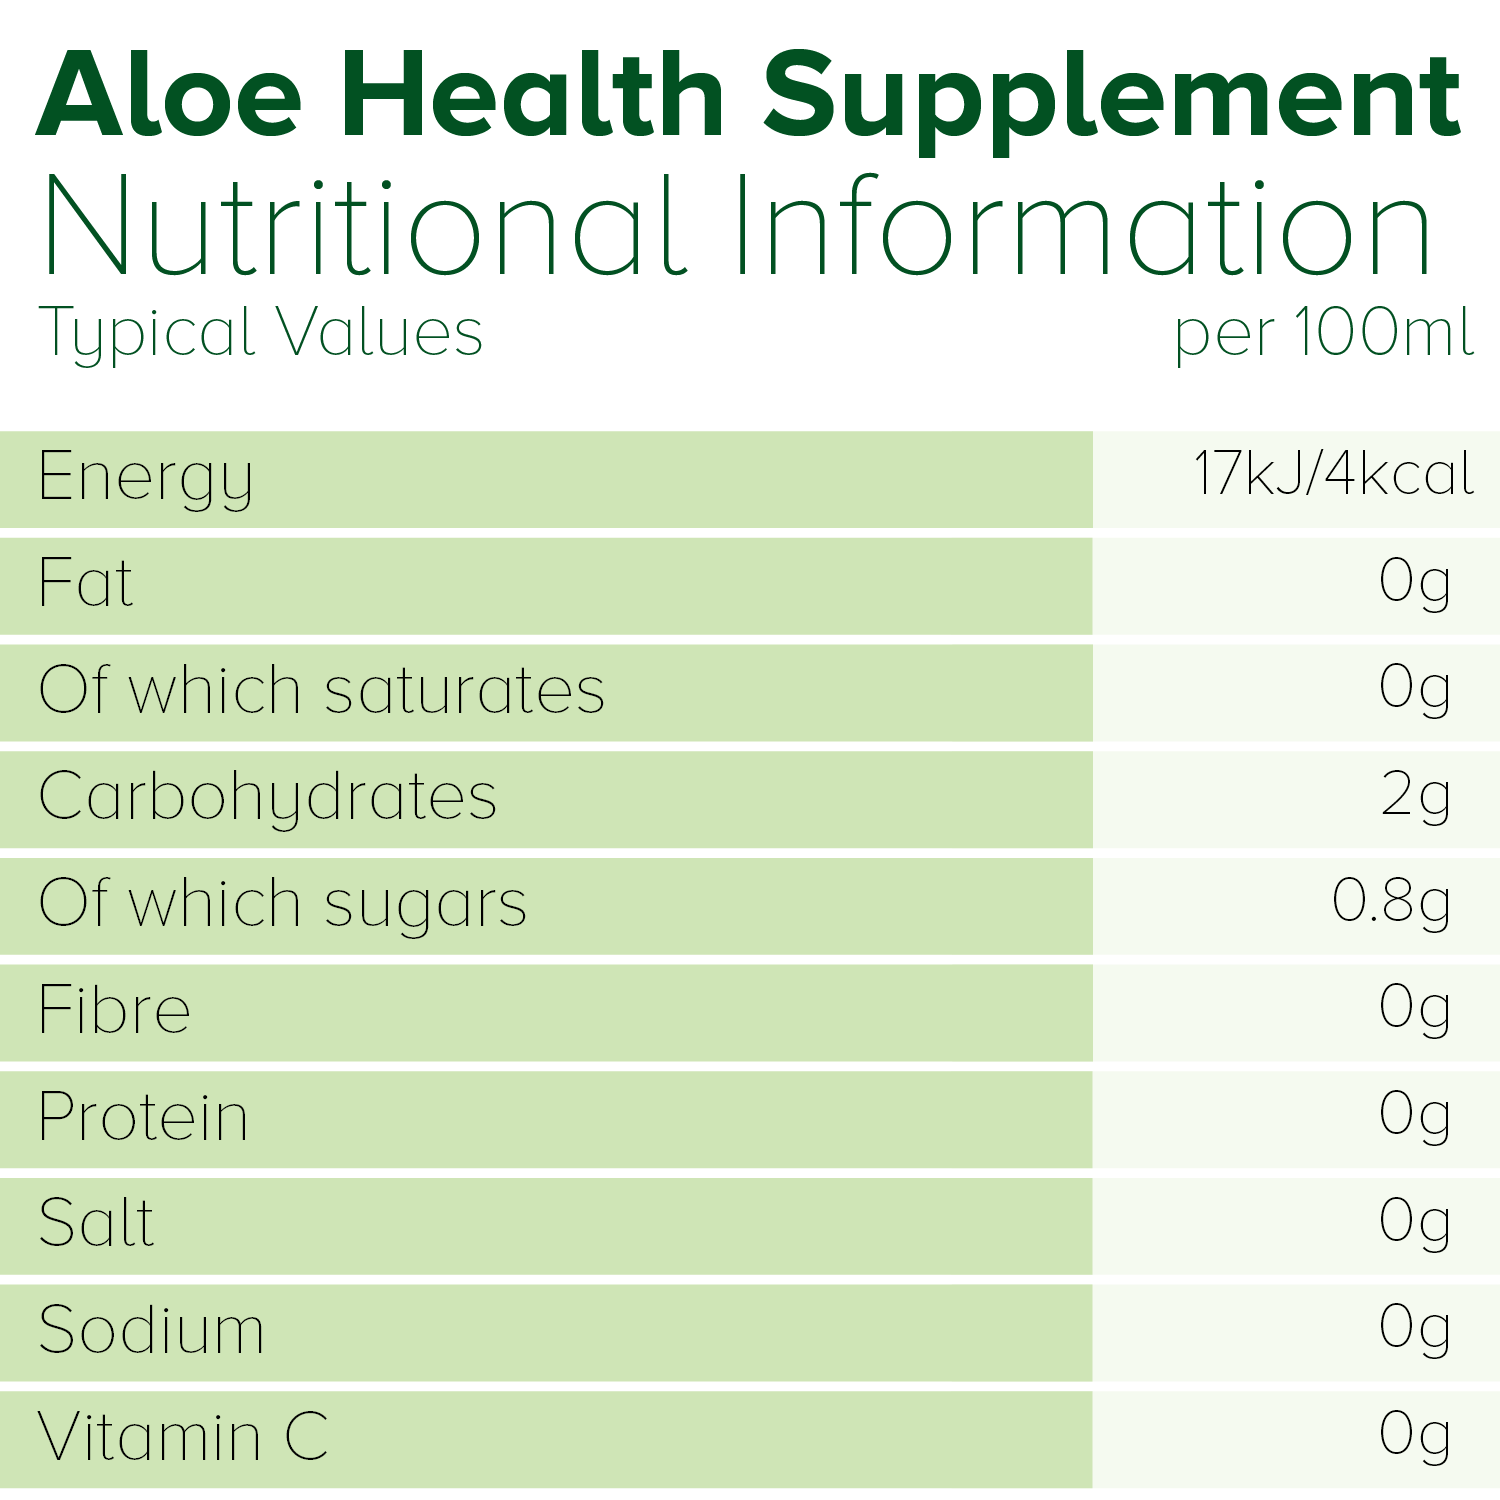 Simplee Aloe Organic Aloe Vera Juice Supplement Nutritional Information